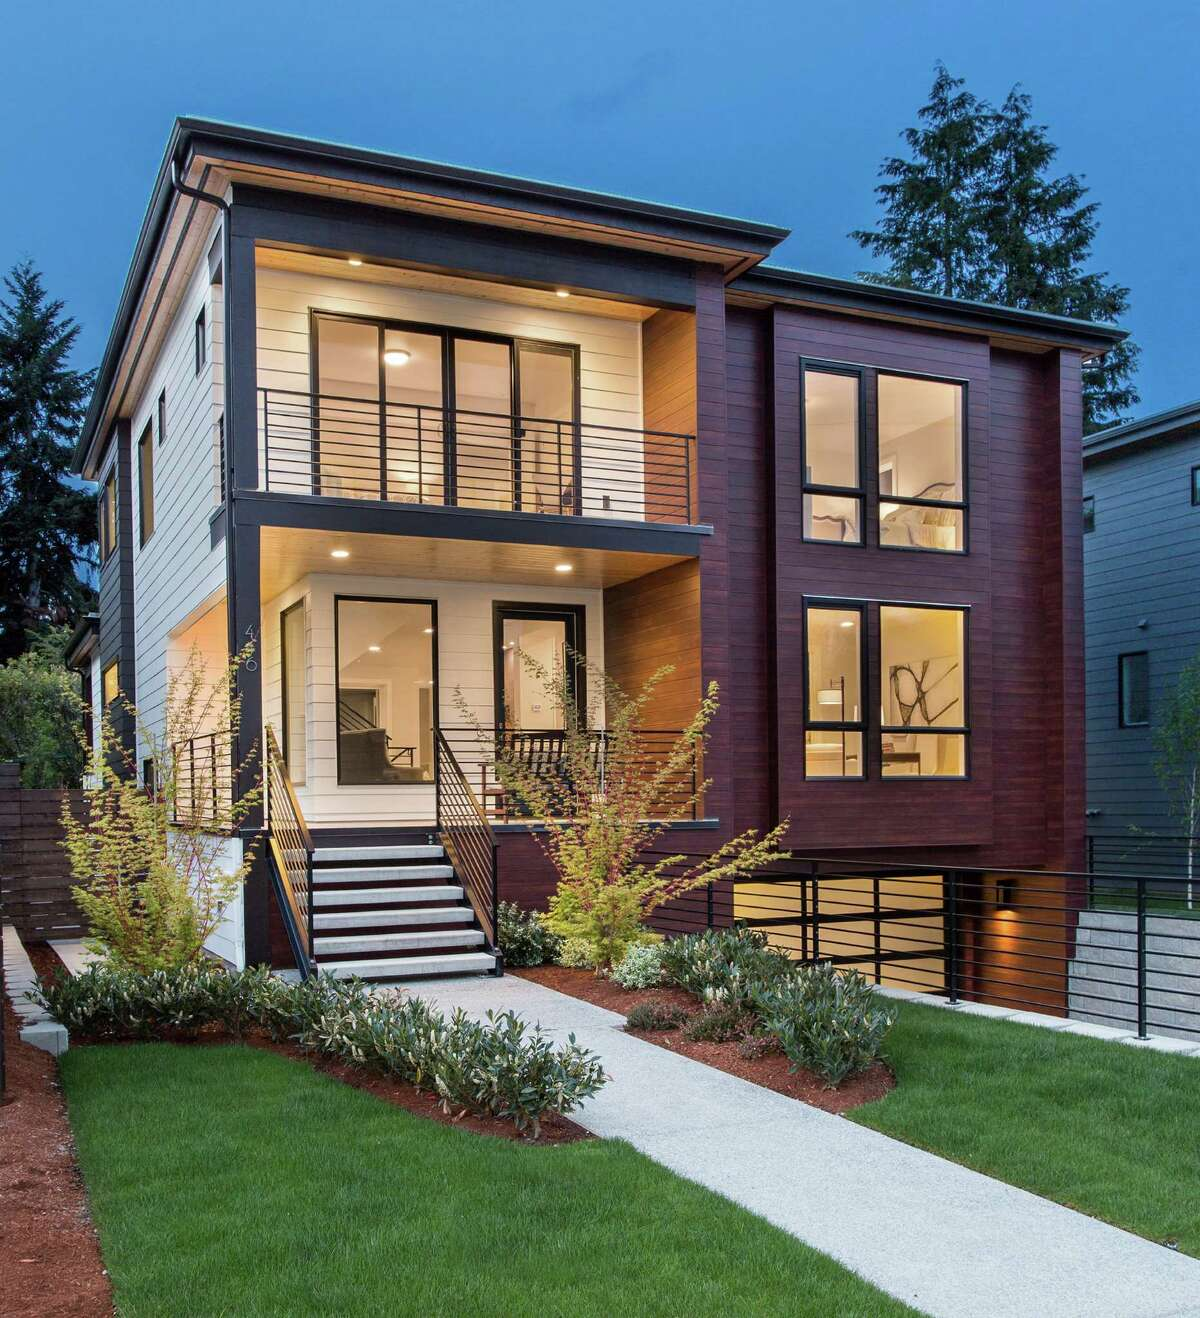 KirklandBuilder: BDR HomesArchitect: Jim Dwyer The first home on the tour, 416 7th Ave. in Kirkland, is a brand new luxury home that spans just over 3,500 square feet. It features a roof deck, covered outdoor patio and an open, airy floor plan.